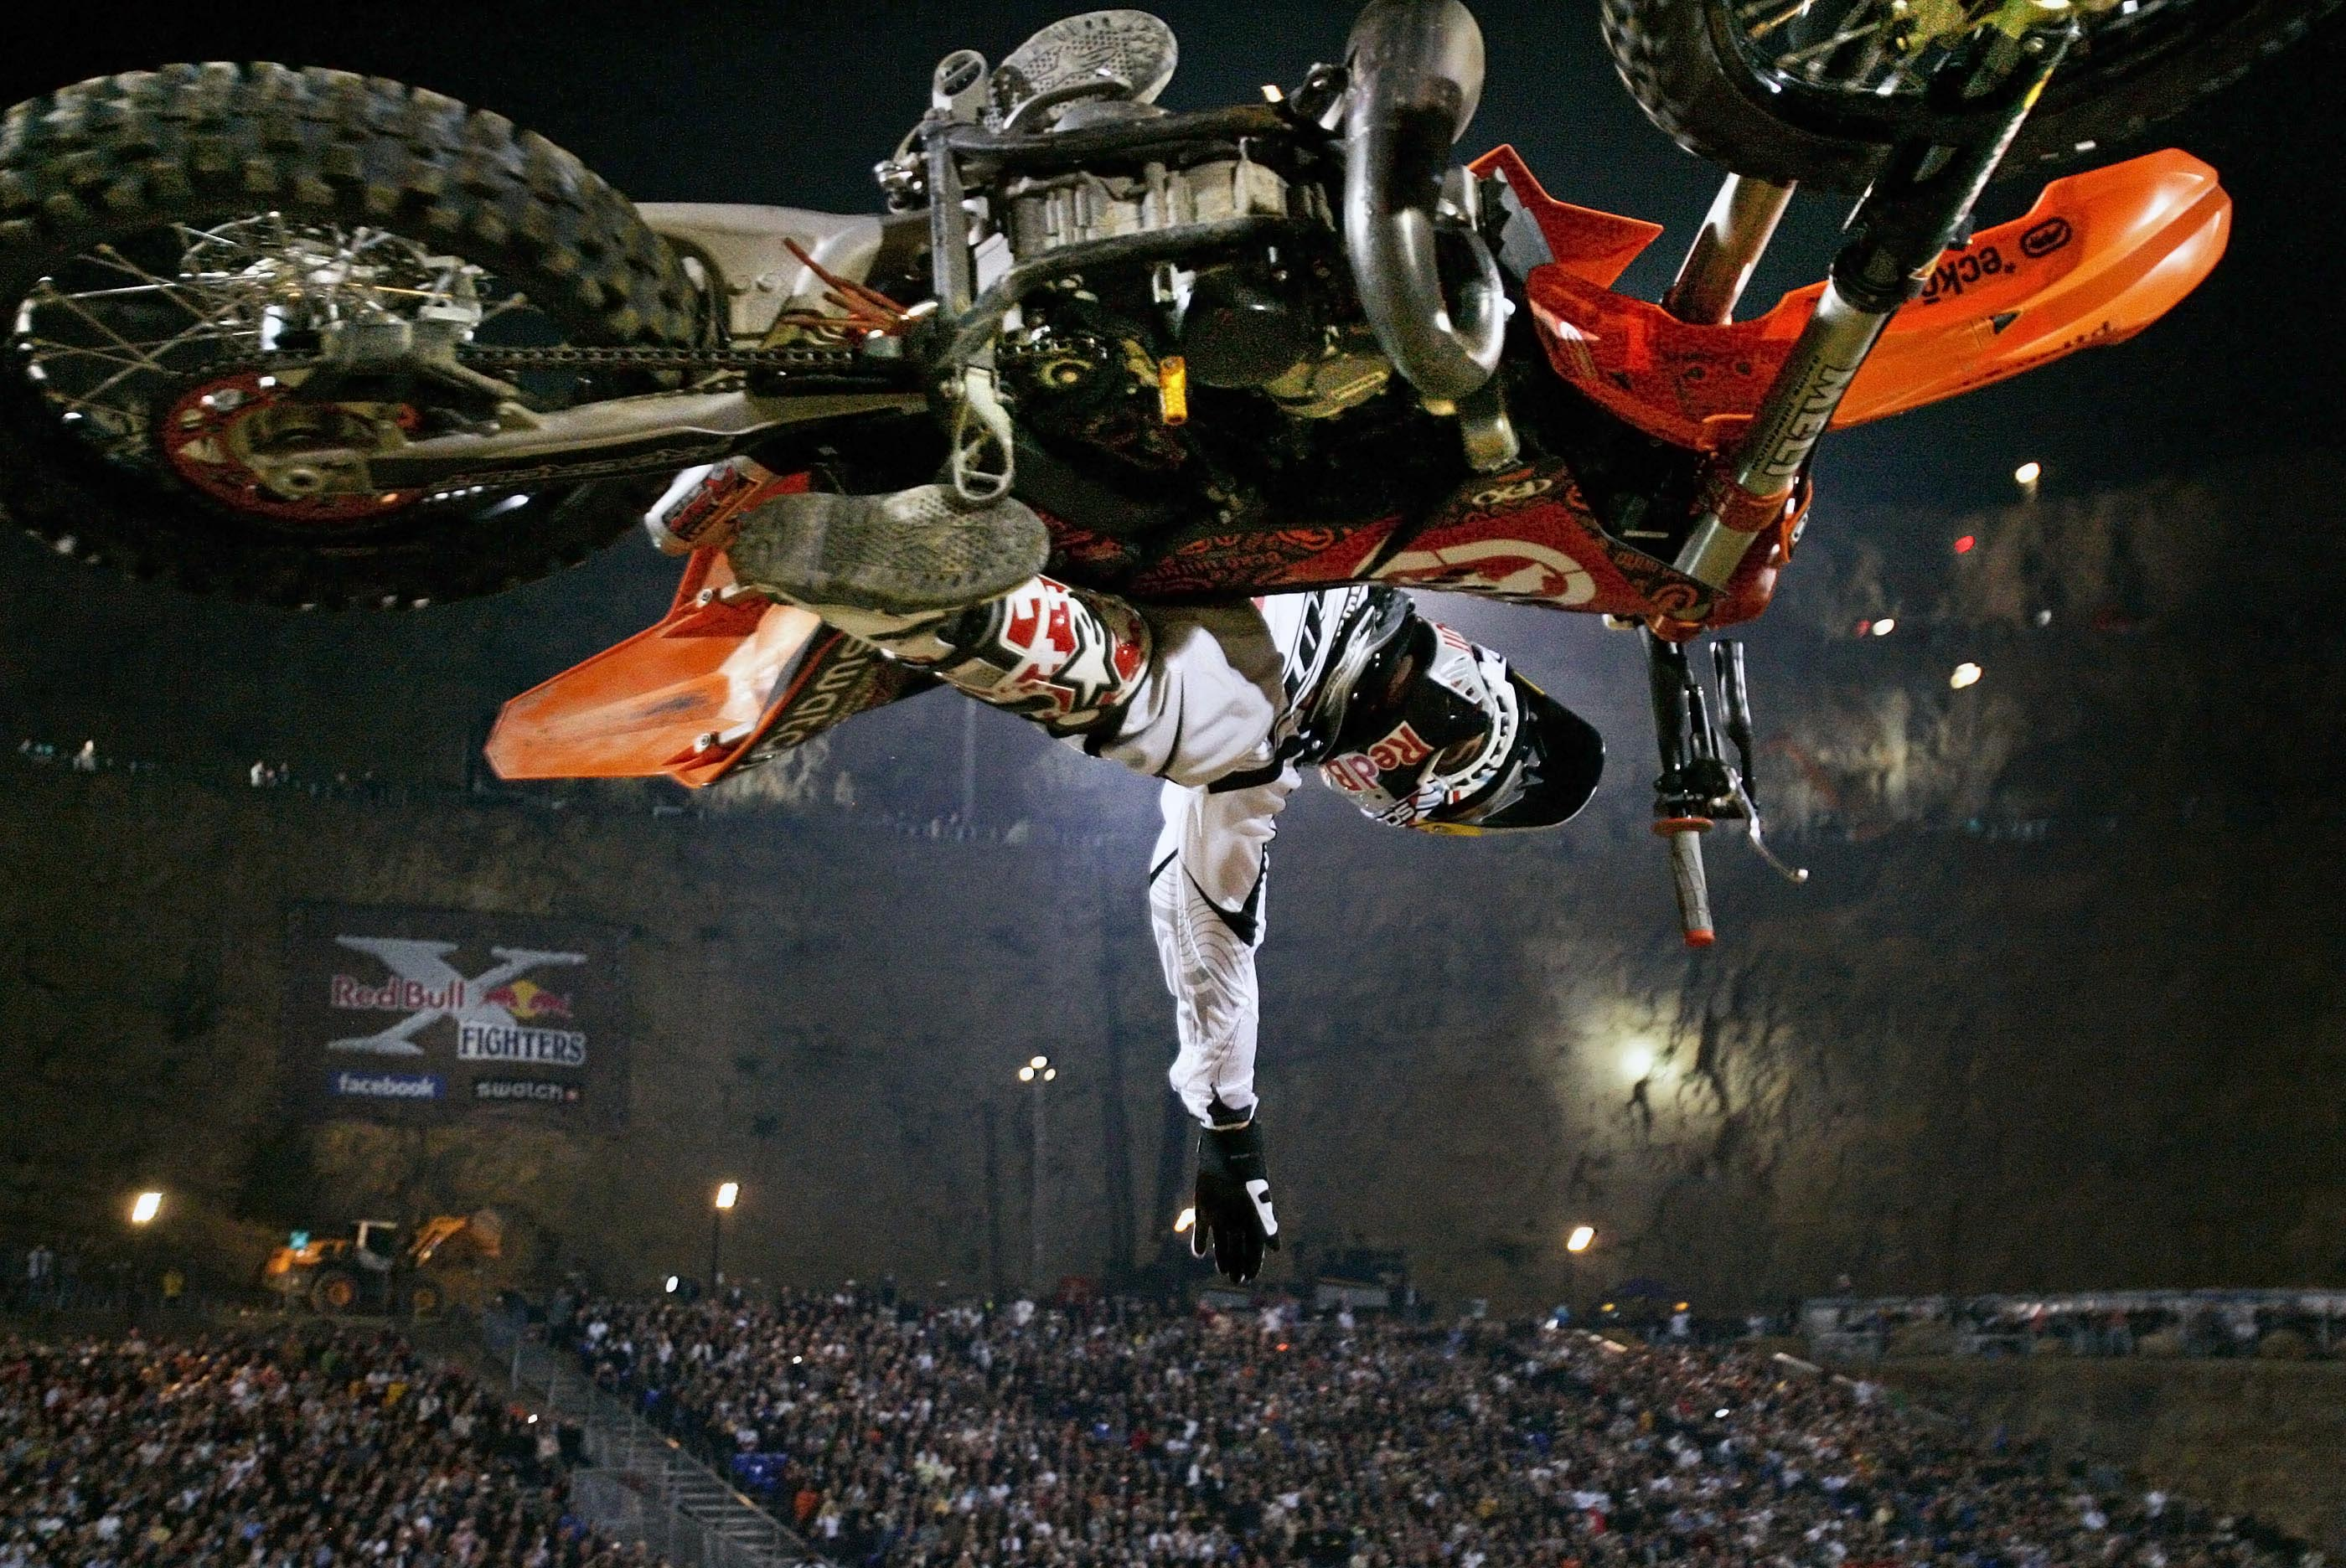 red bull x fighters 2014. Black Bedroom Furniture Sets. Home Design Ideas